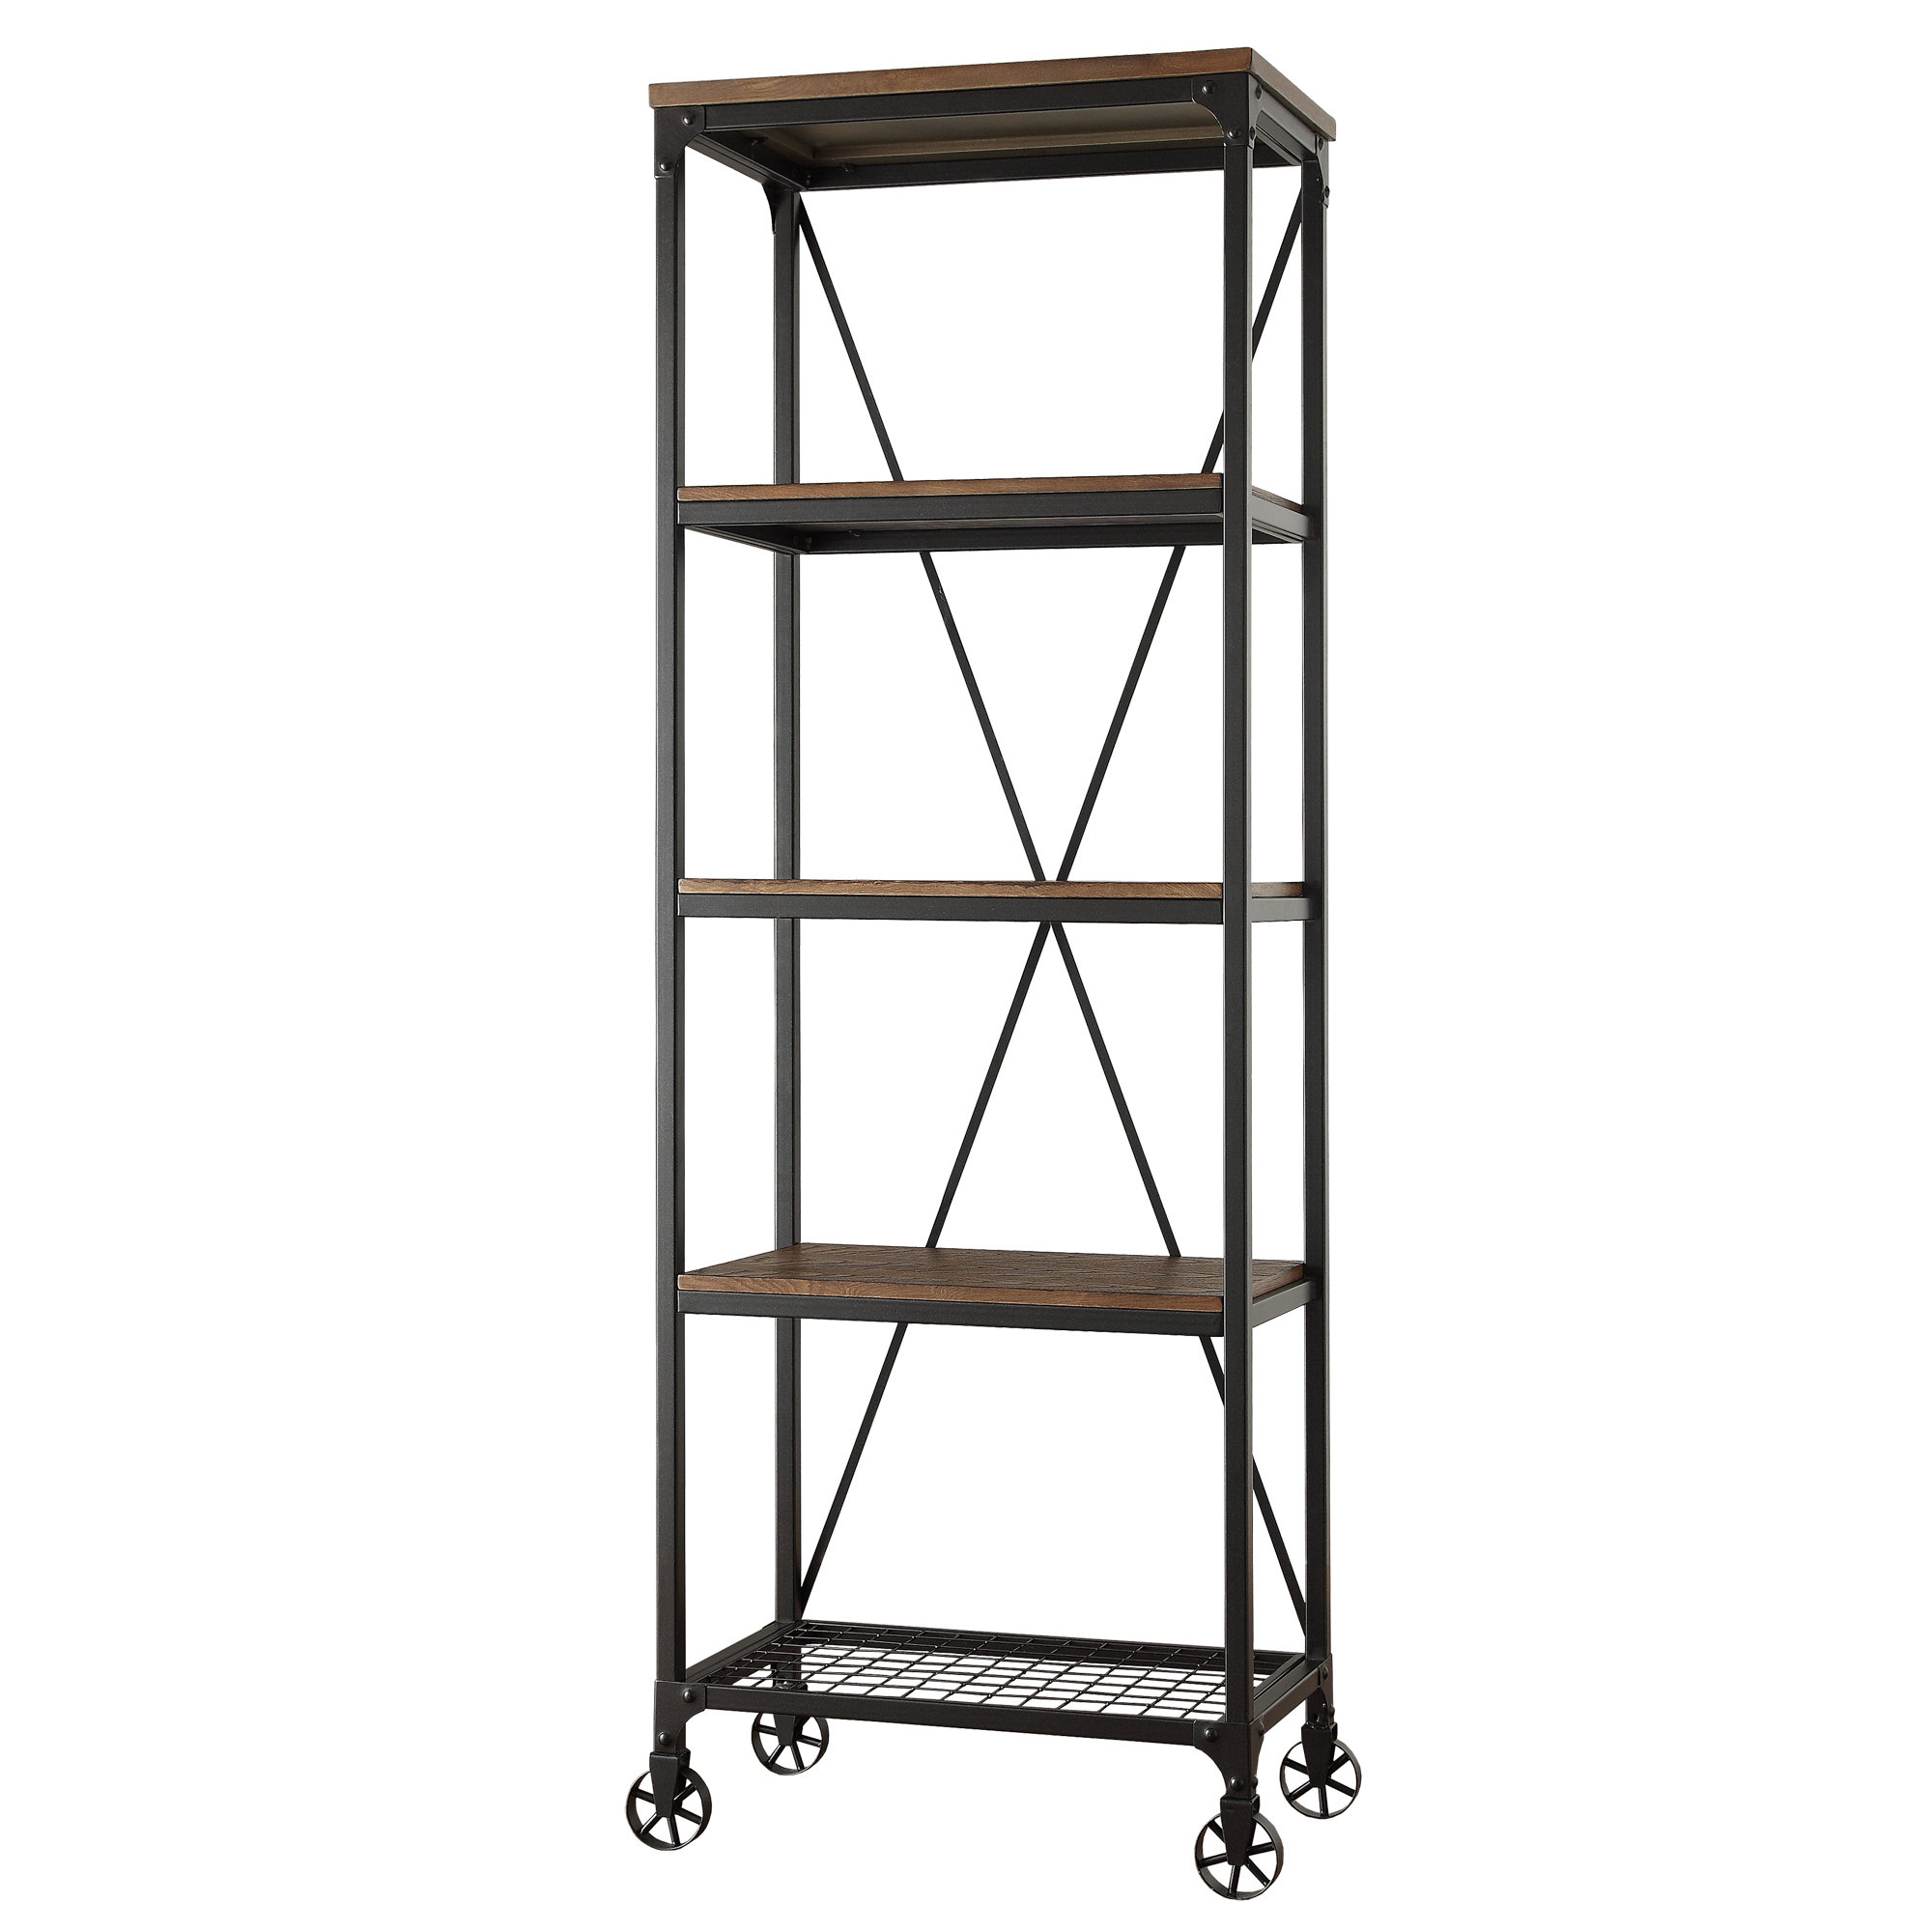 Hera Etagere Bookcases In Widely Used Cable Etagere Bookcase (View 19 of 20)